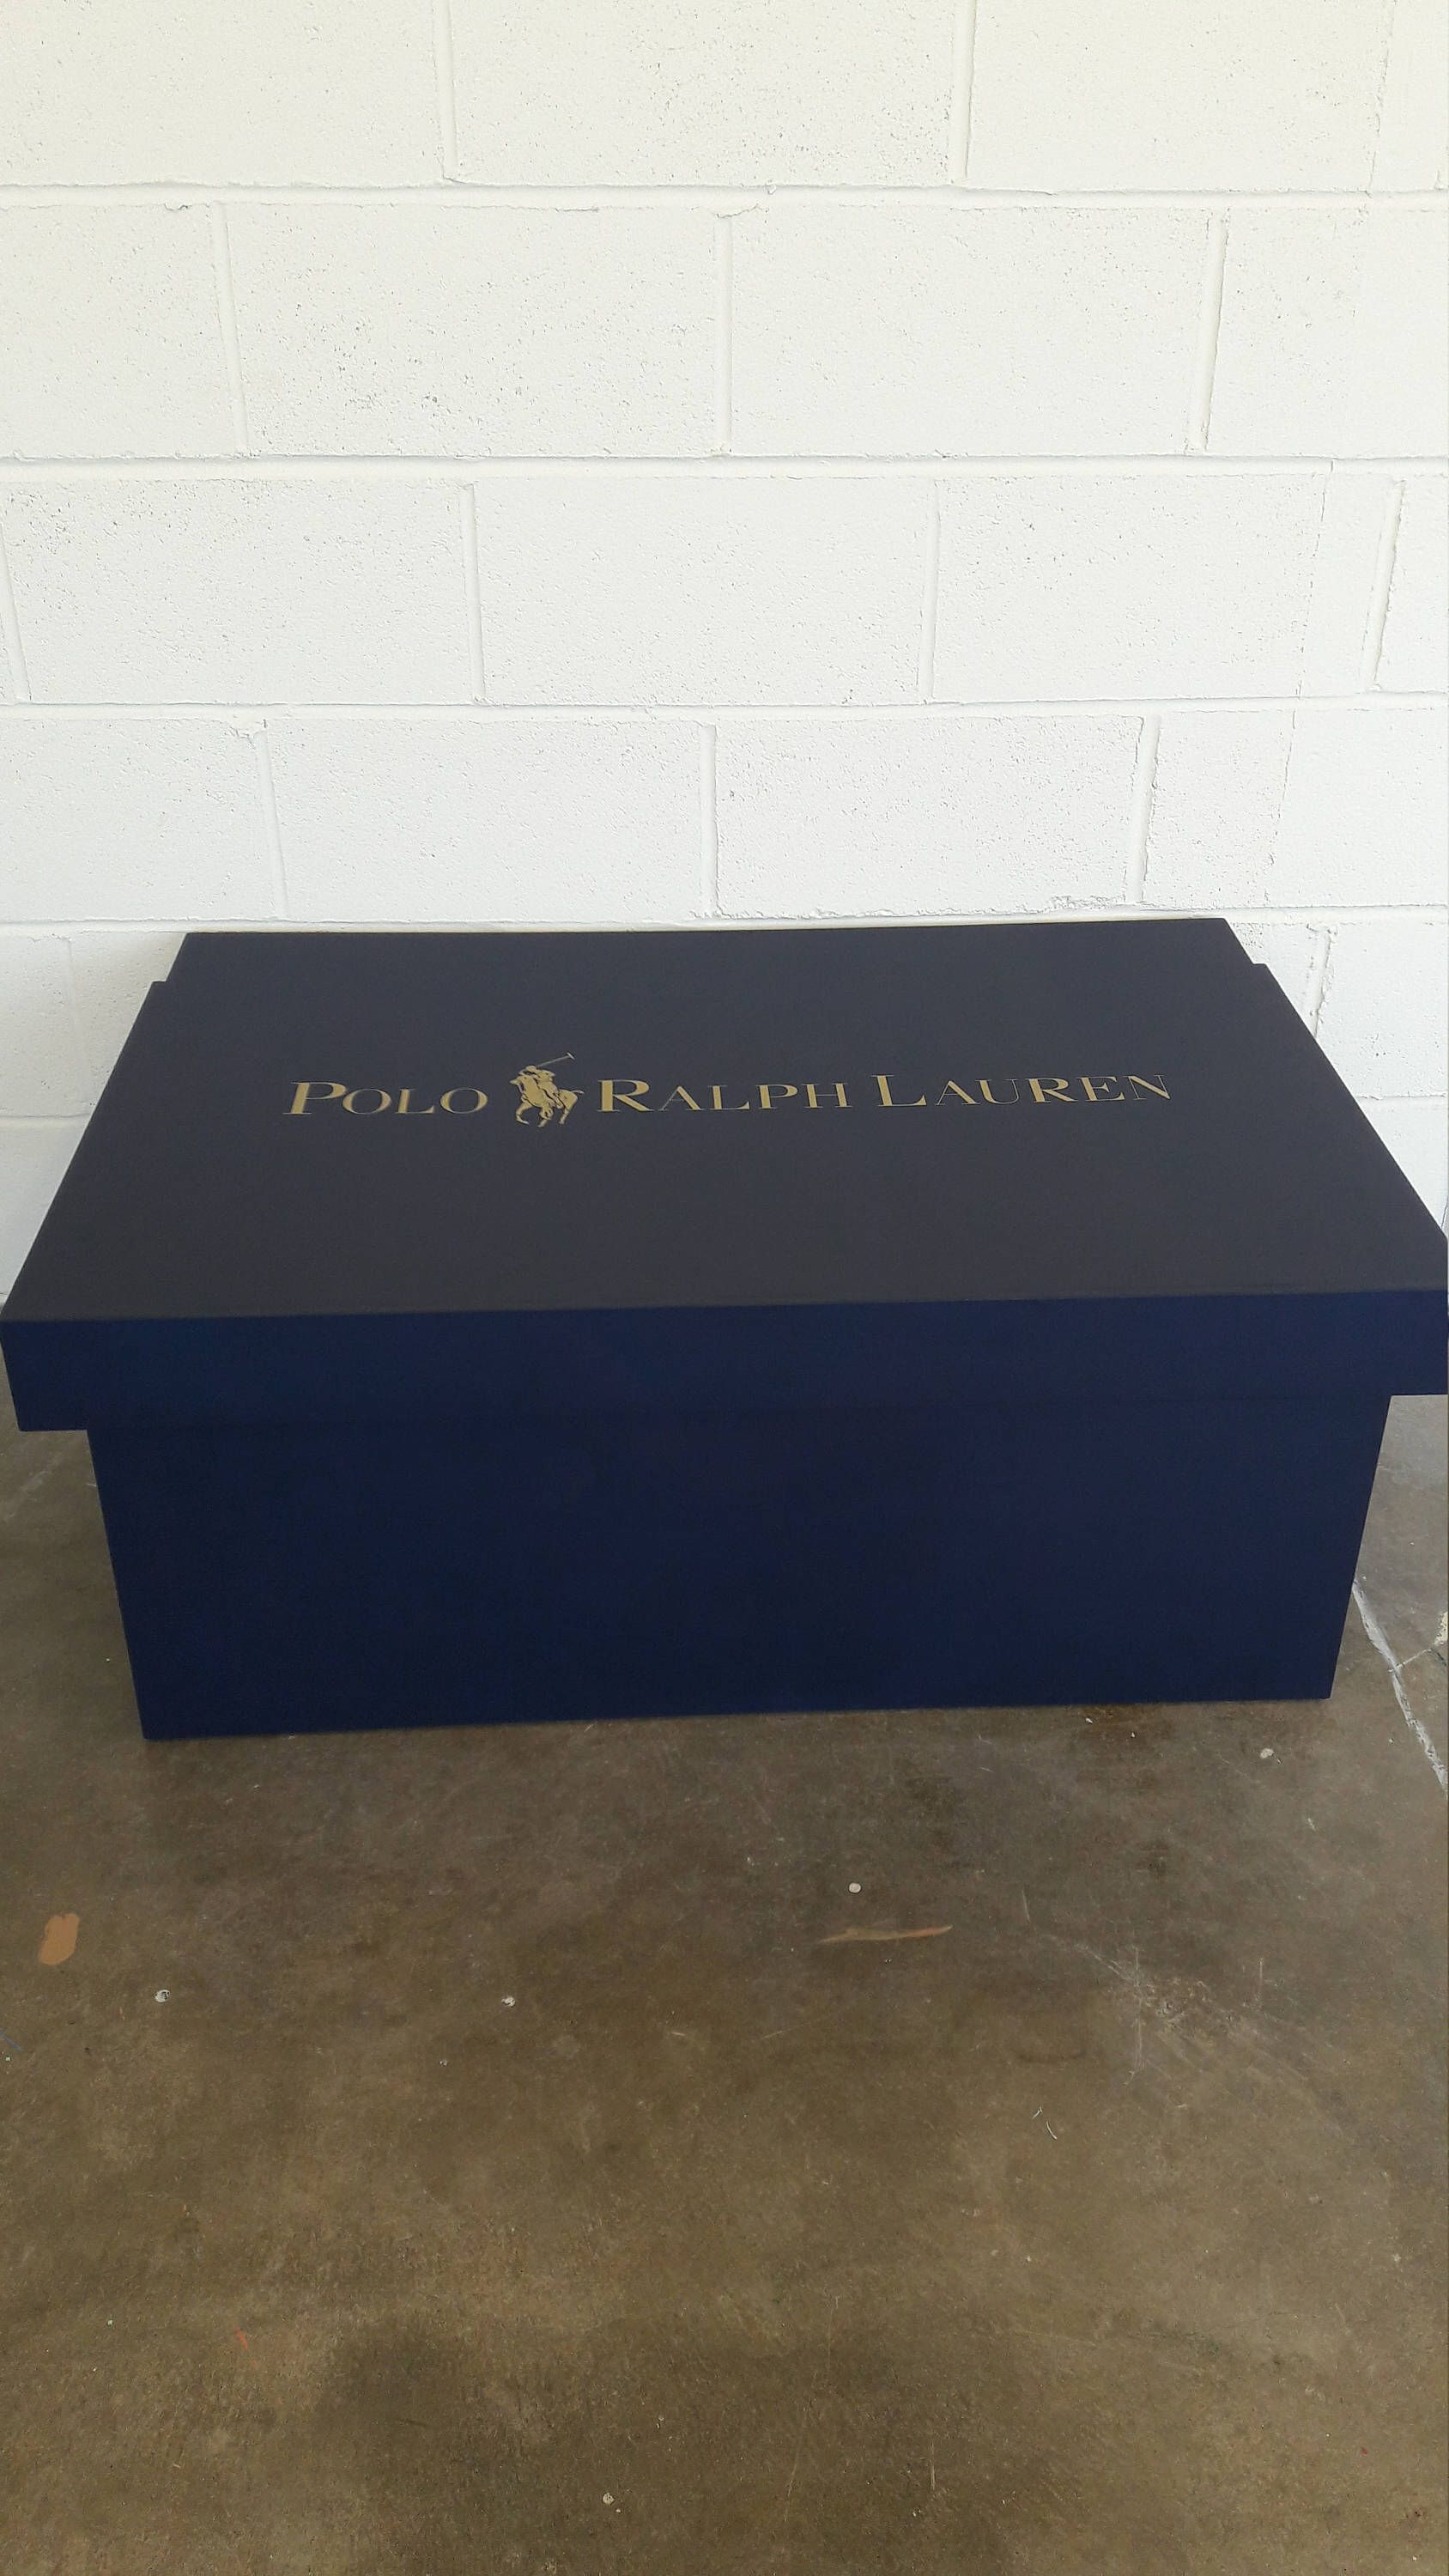 8d3eb998f2f0d XL / Giant Trainer / Sneaker Shoe Storage Boxes, Ralph Lauren 16+ ...